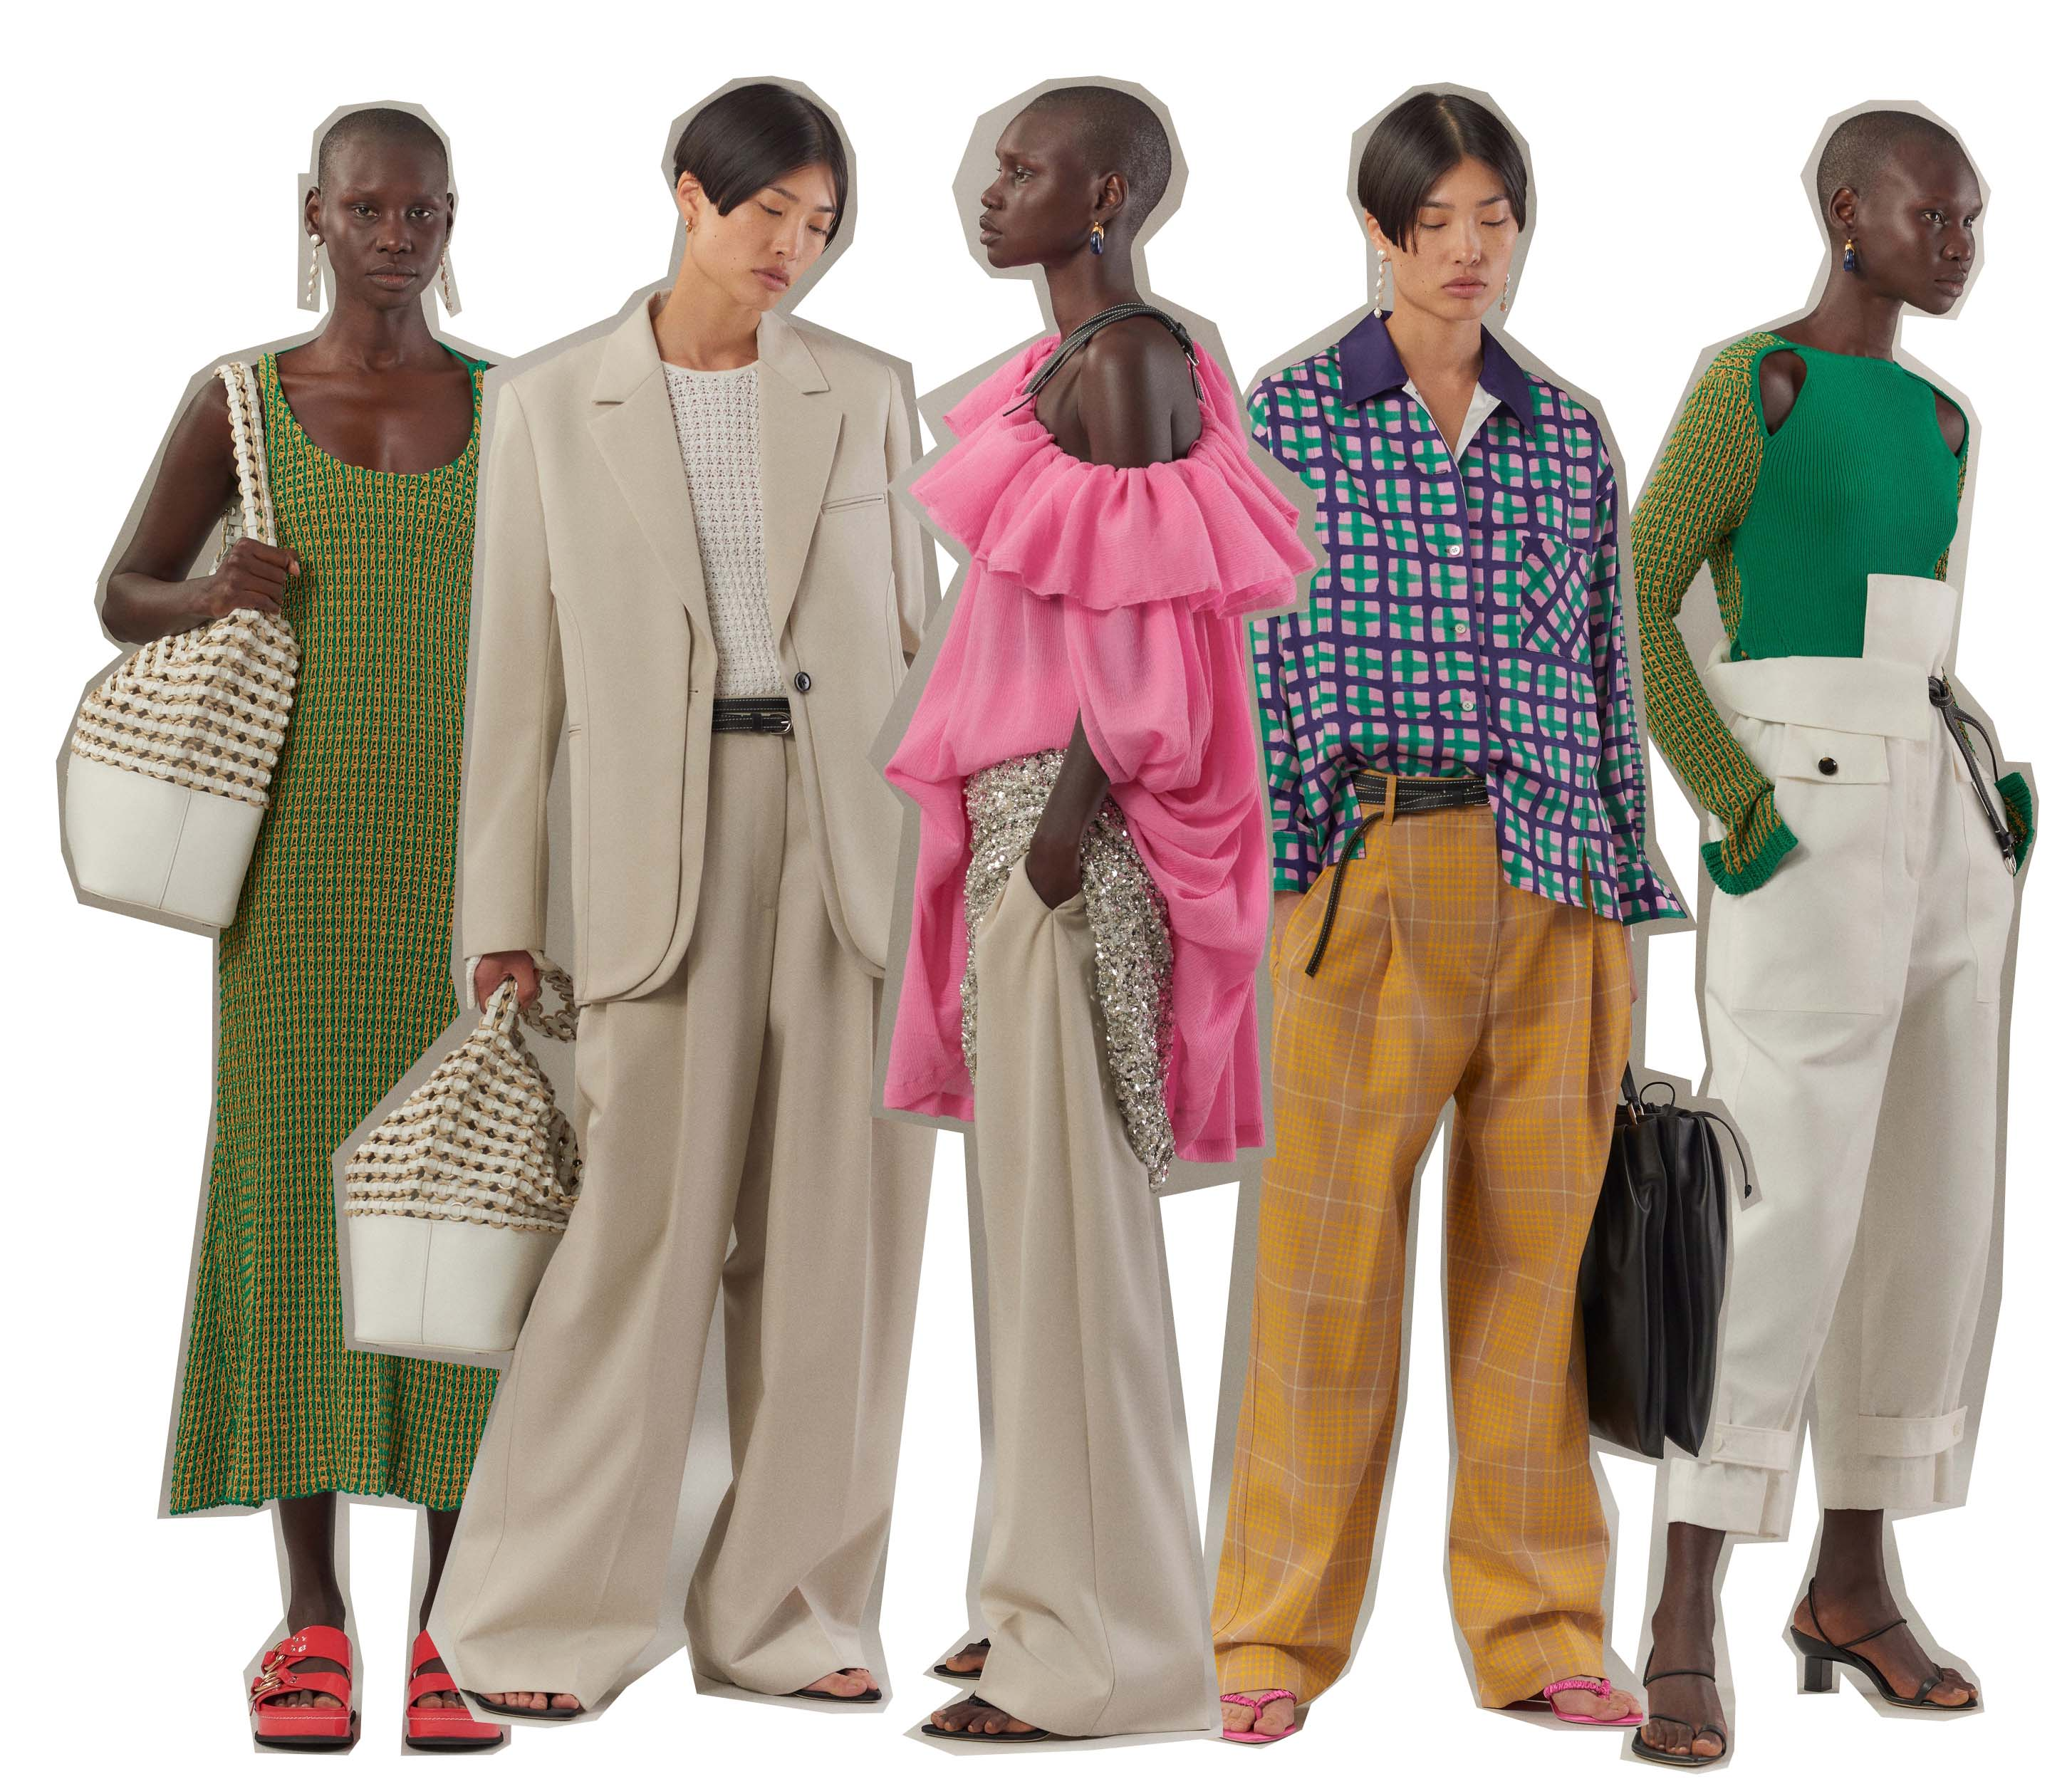 3.1-Phillip-Lim-Spring-2022-collection